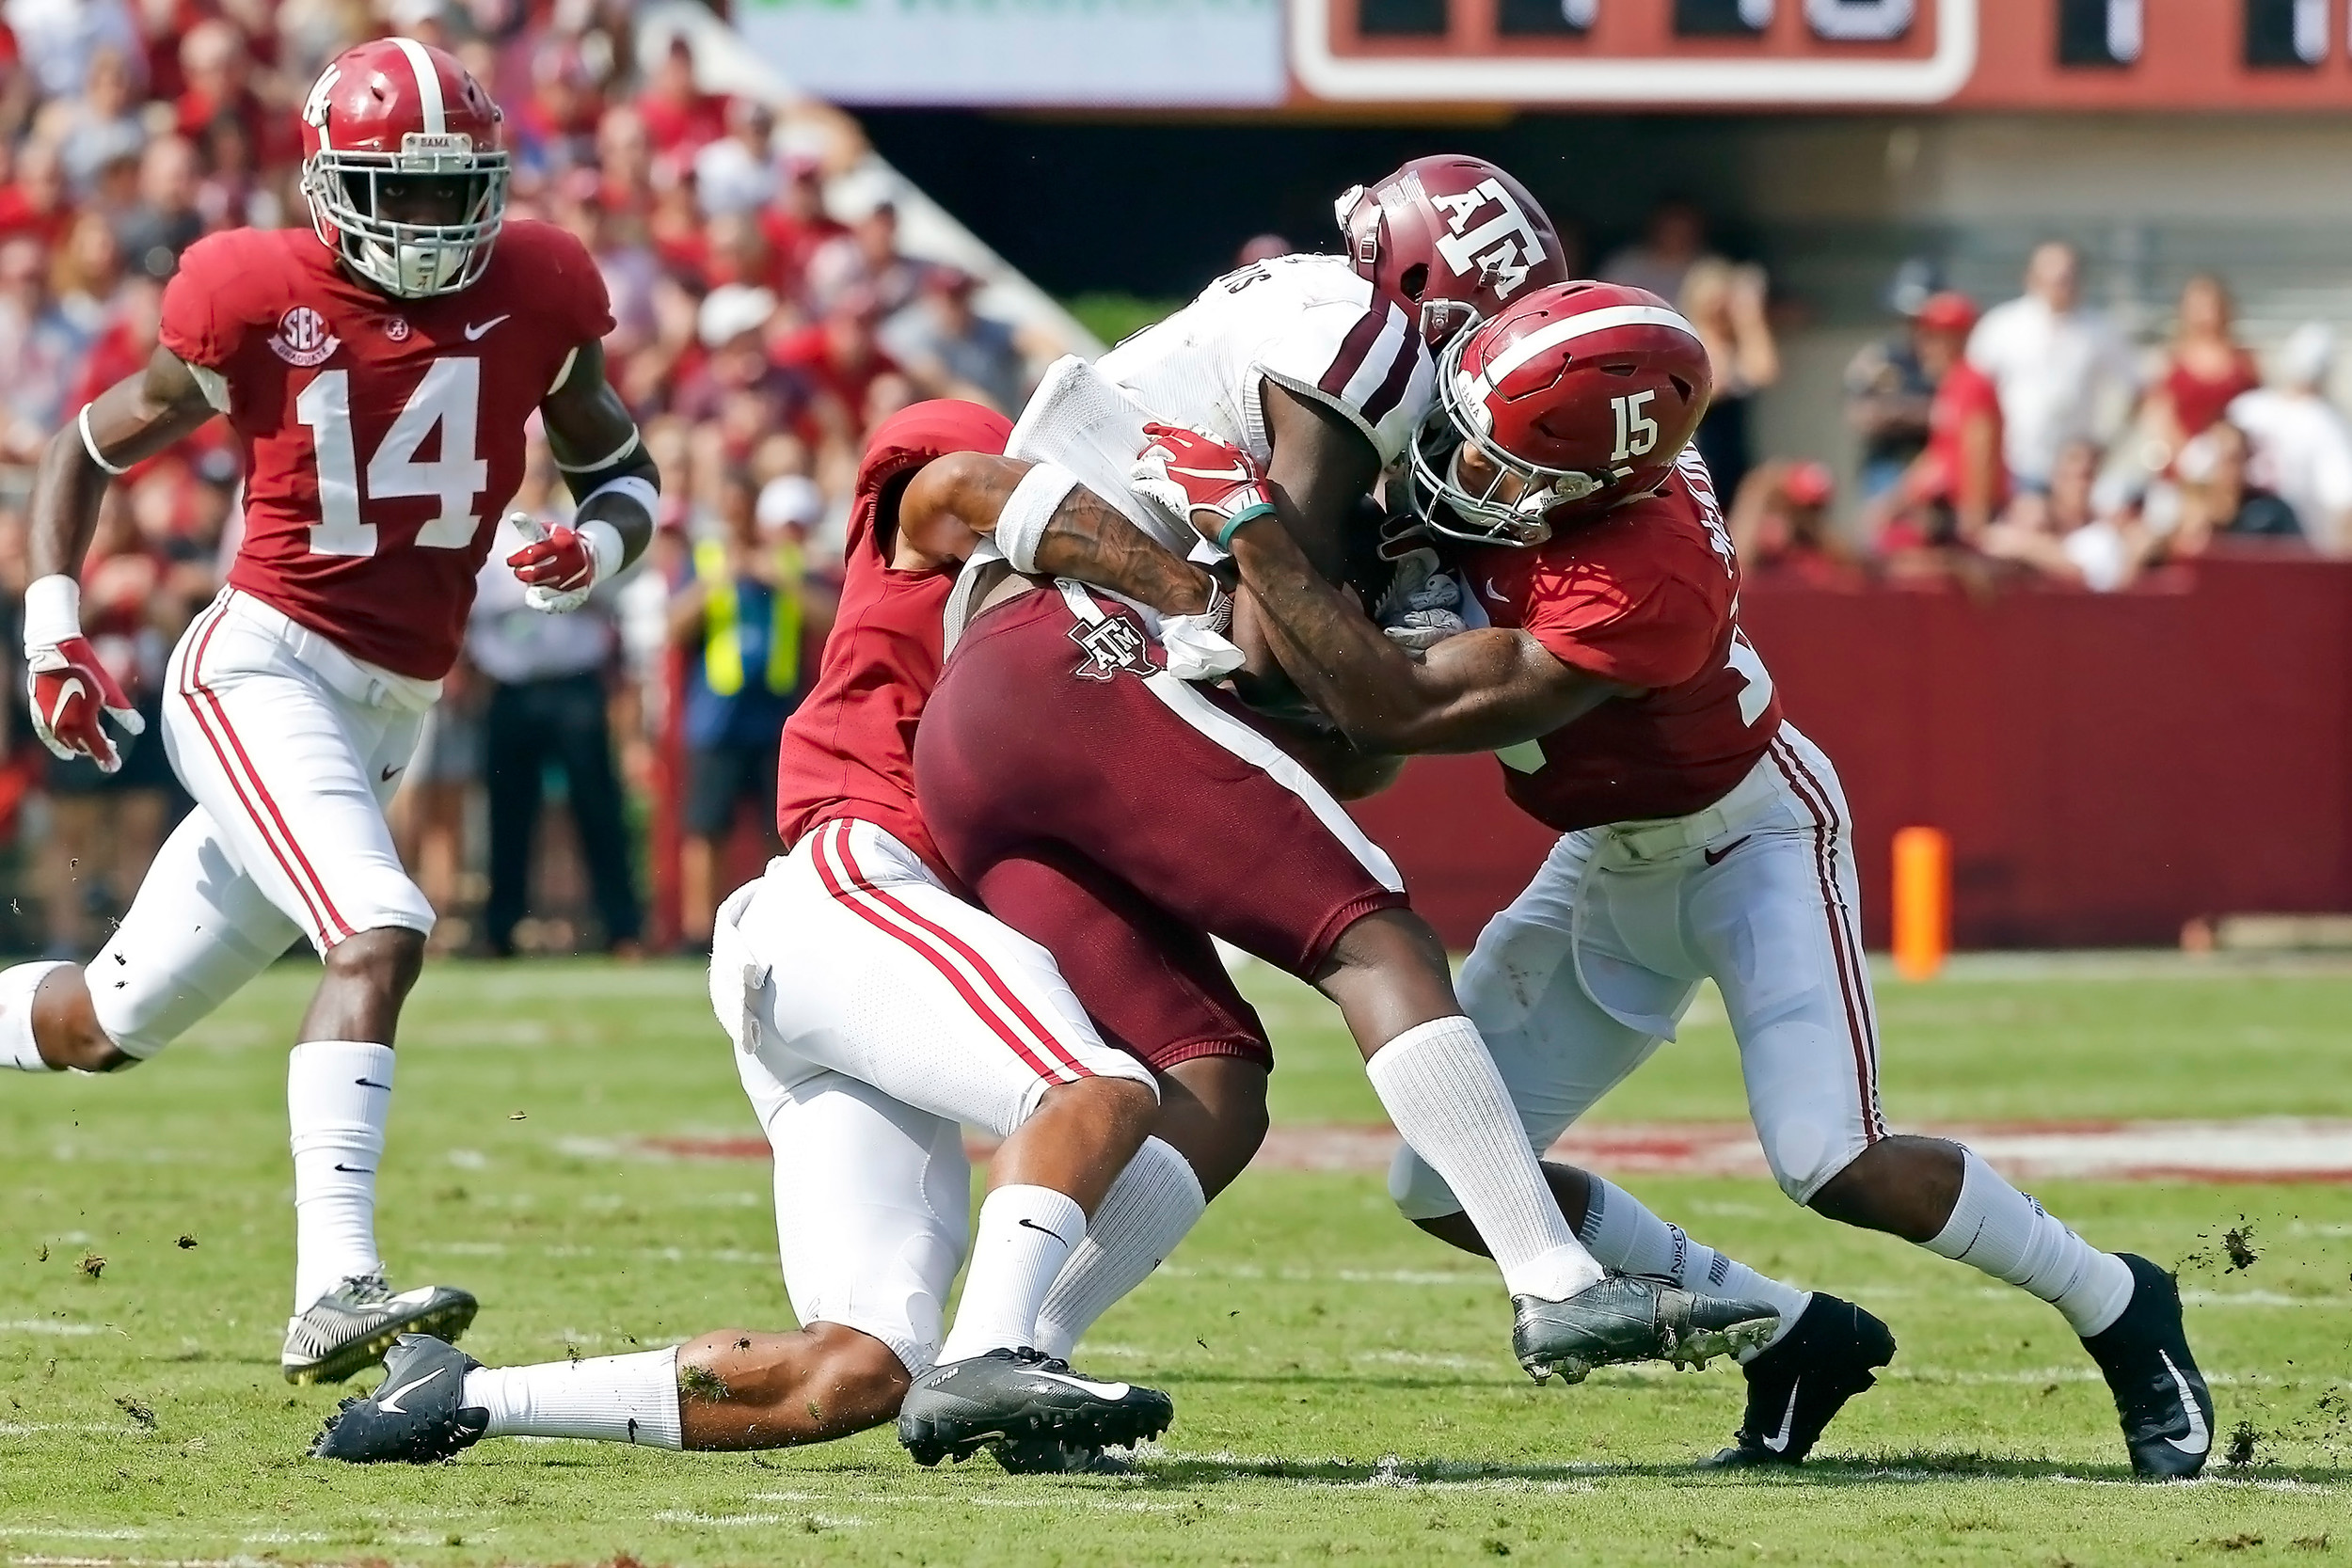 Alabama Crimson Tide defensive backs Patrick Surtain II (2) and Xavier McKinney (15) combine on a tackle during the game between the Texas A&M Aggies and the University of Alabama Crimson Tide at Bryant-Denny Stadium.  Jason Clark / Daily Mountain Eagle